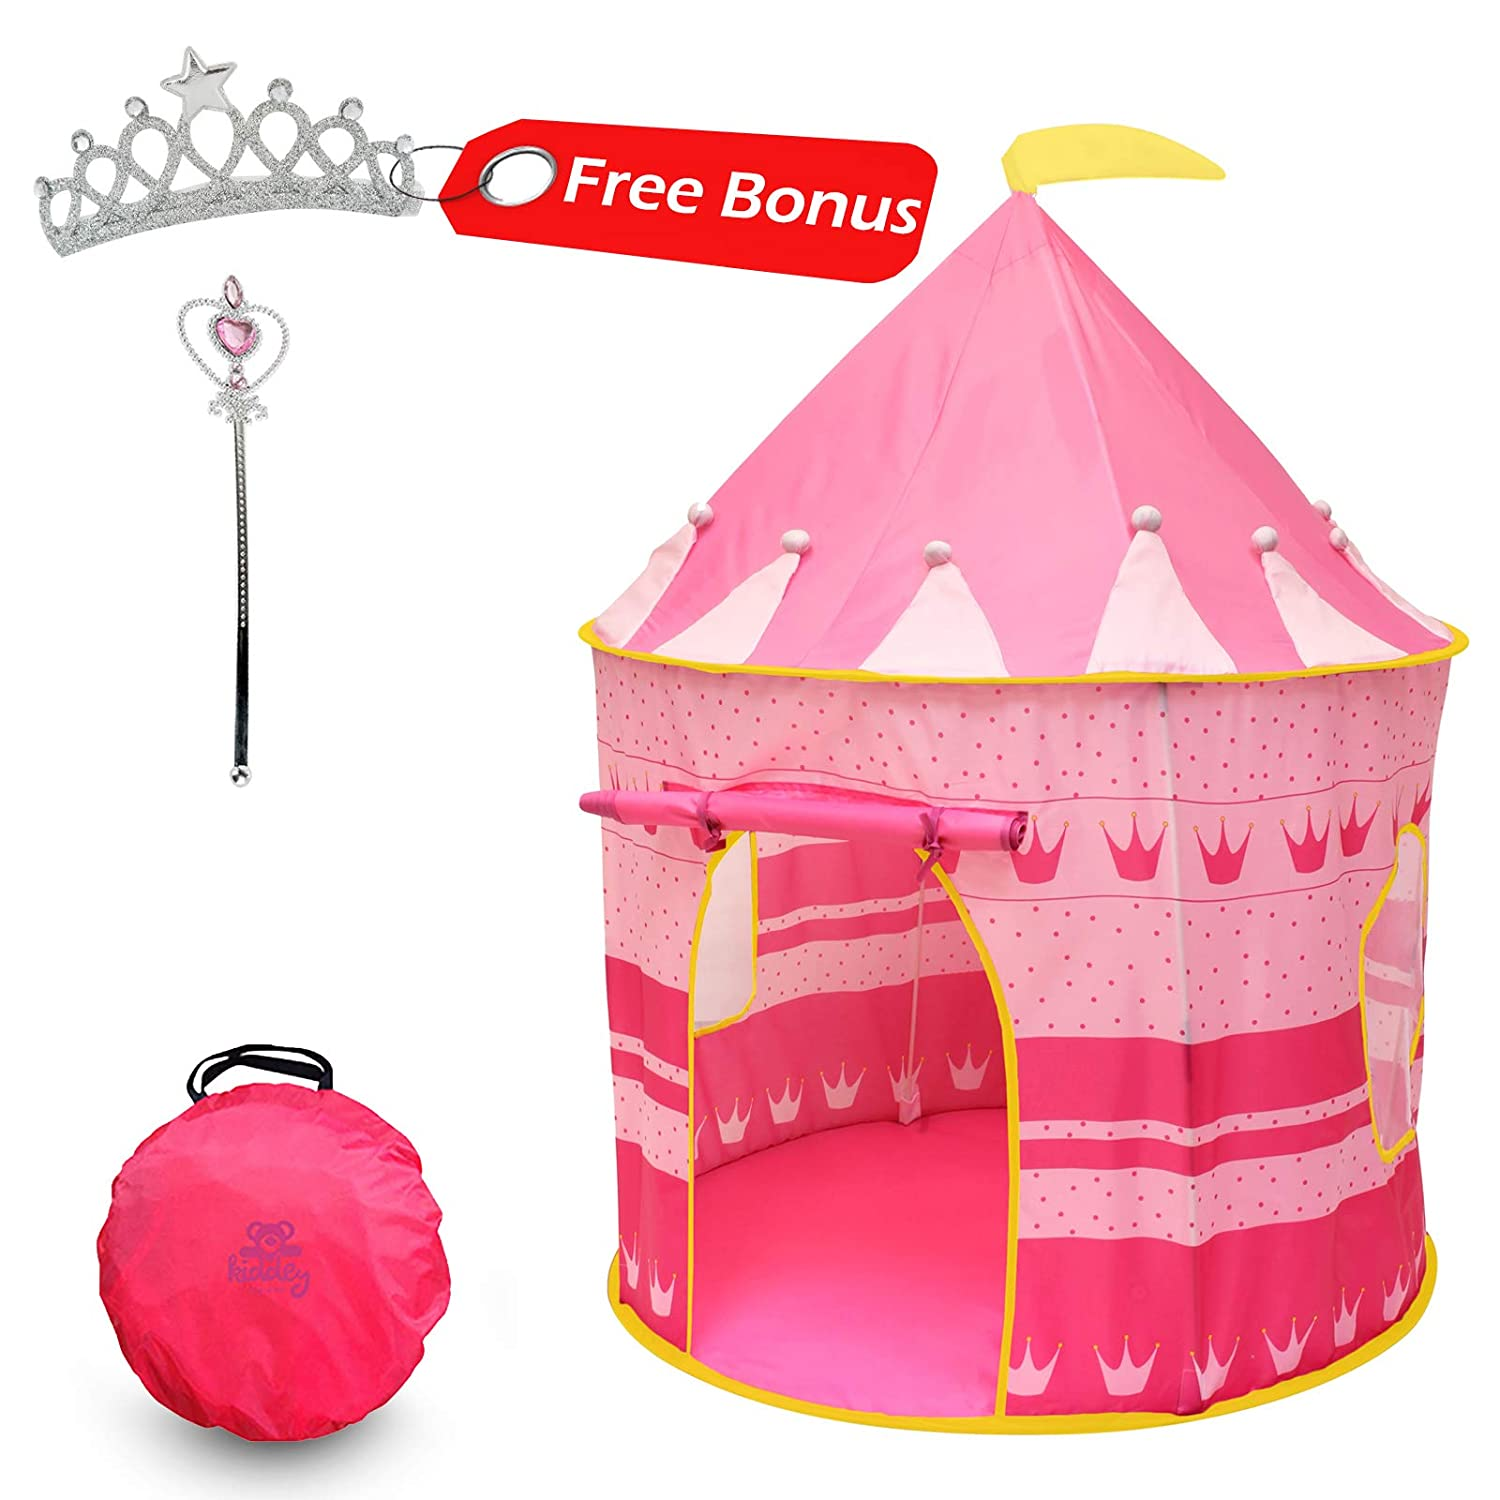 4629e9e80362 Amazon.com  Kiddey Princess Castle Kids Play Tent - Indoor Outdoor Pink  Children Playhouse Christmas gifts for kids Boys Girls